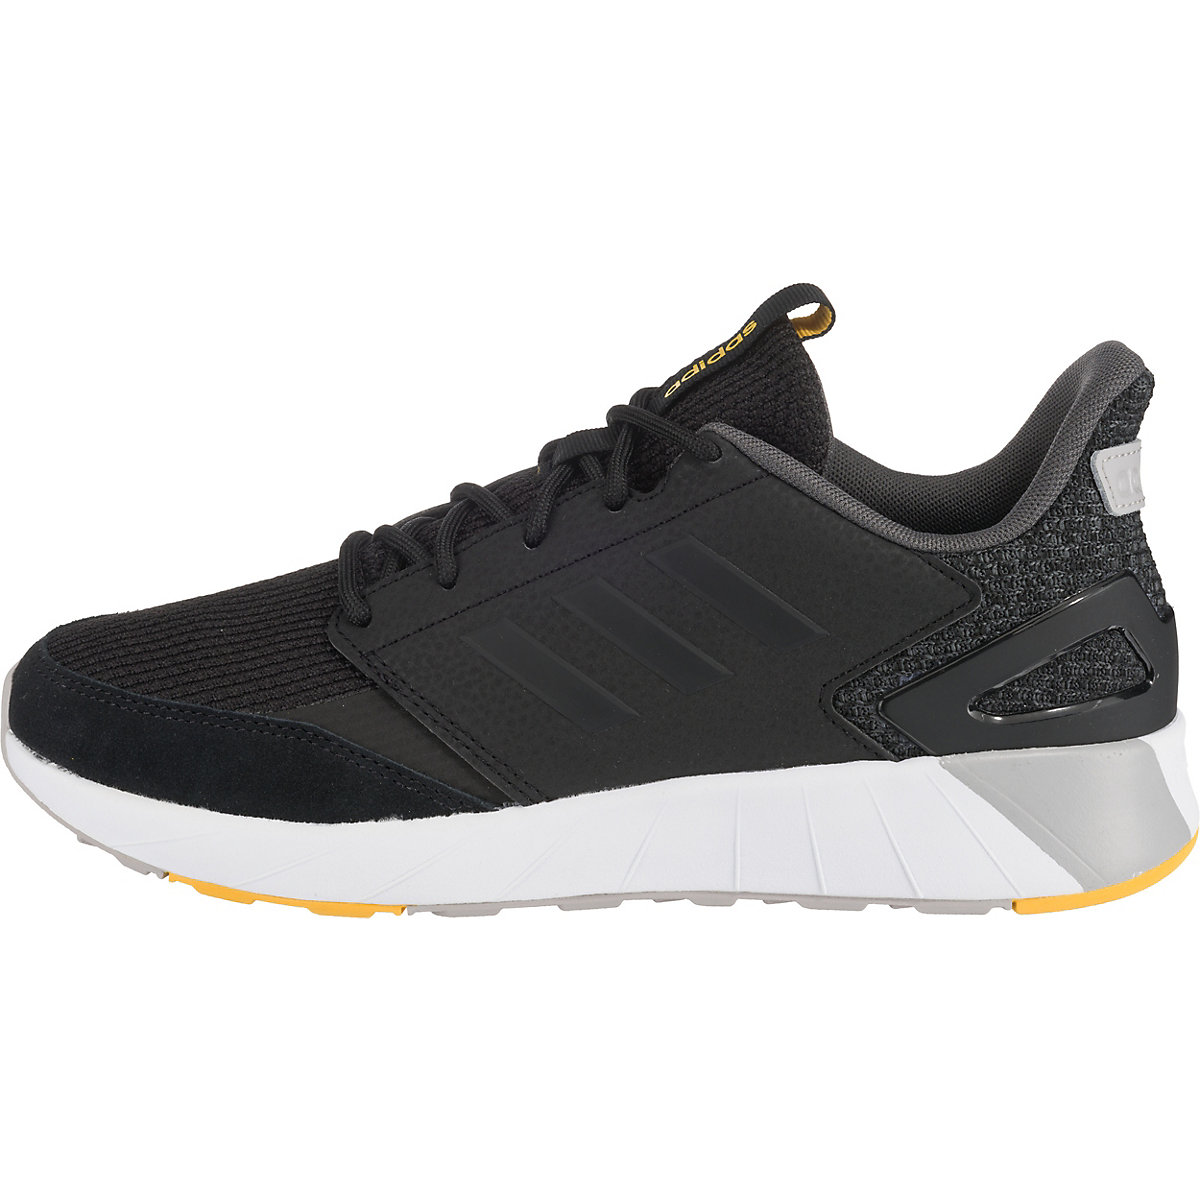 Adidas Sport Inspired, Questarstrike X Sneakers Low, Schwarz